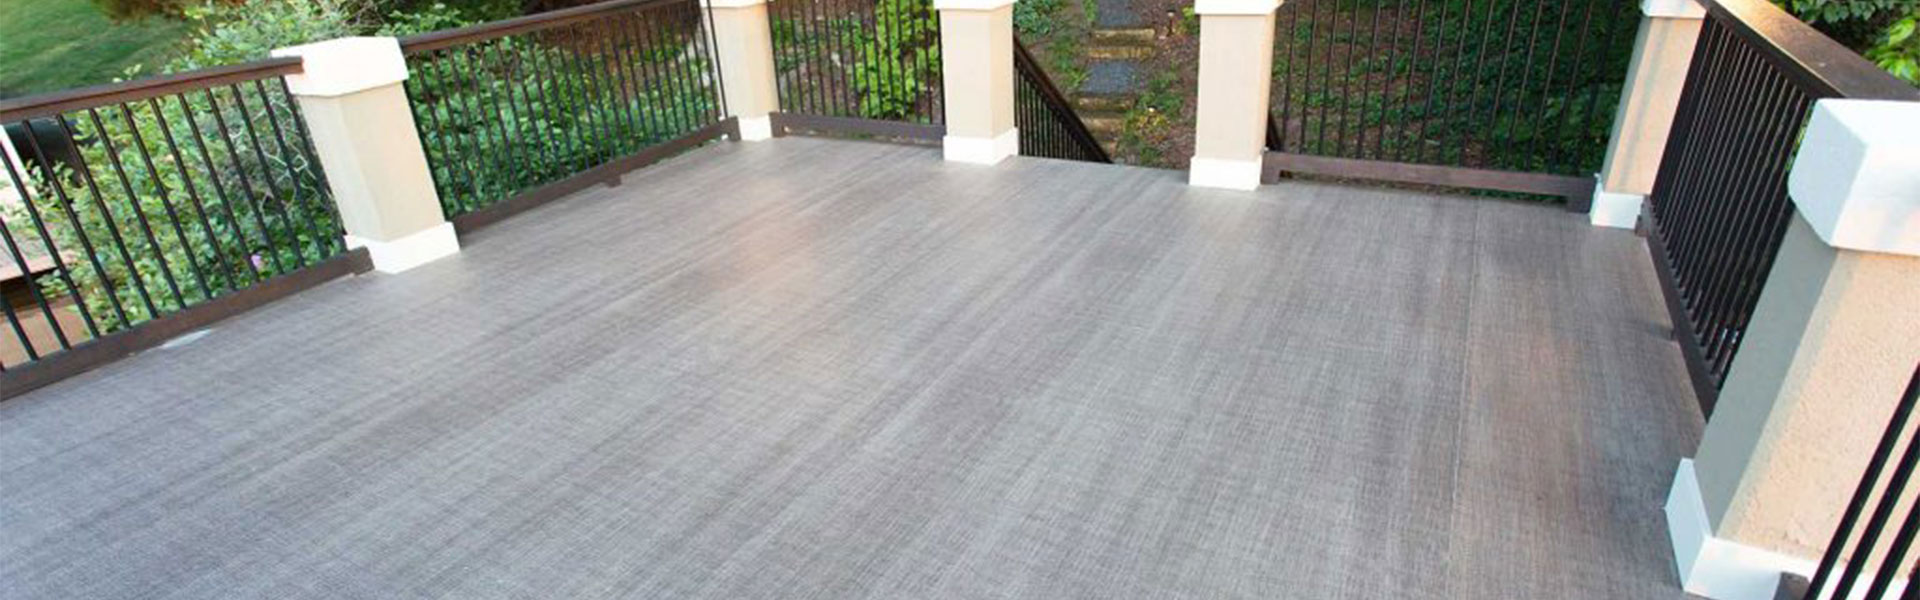 Image showing Duradek products and decking in a vinyl deck